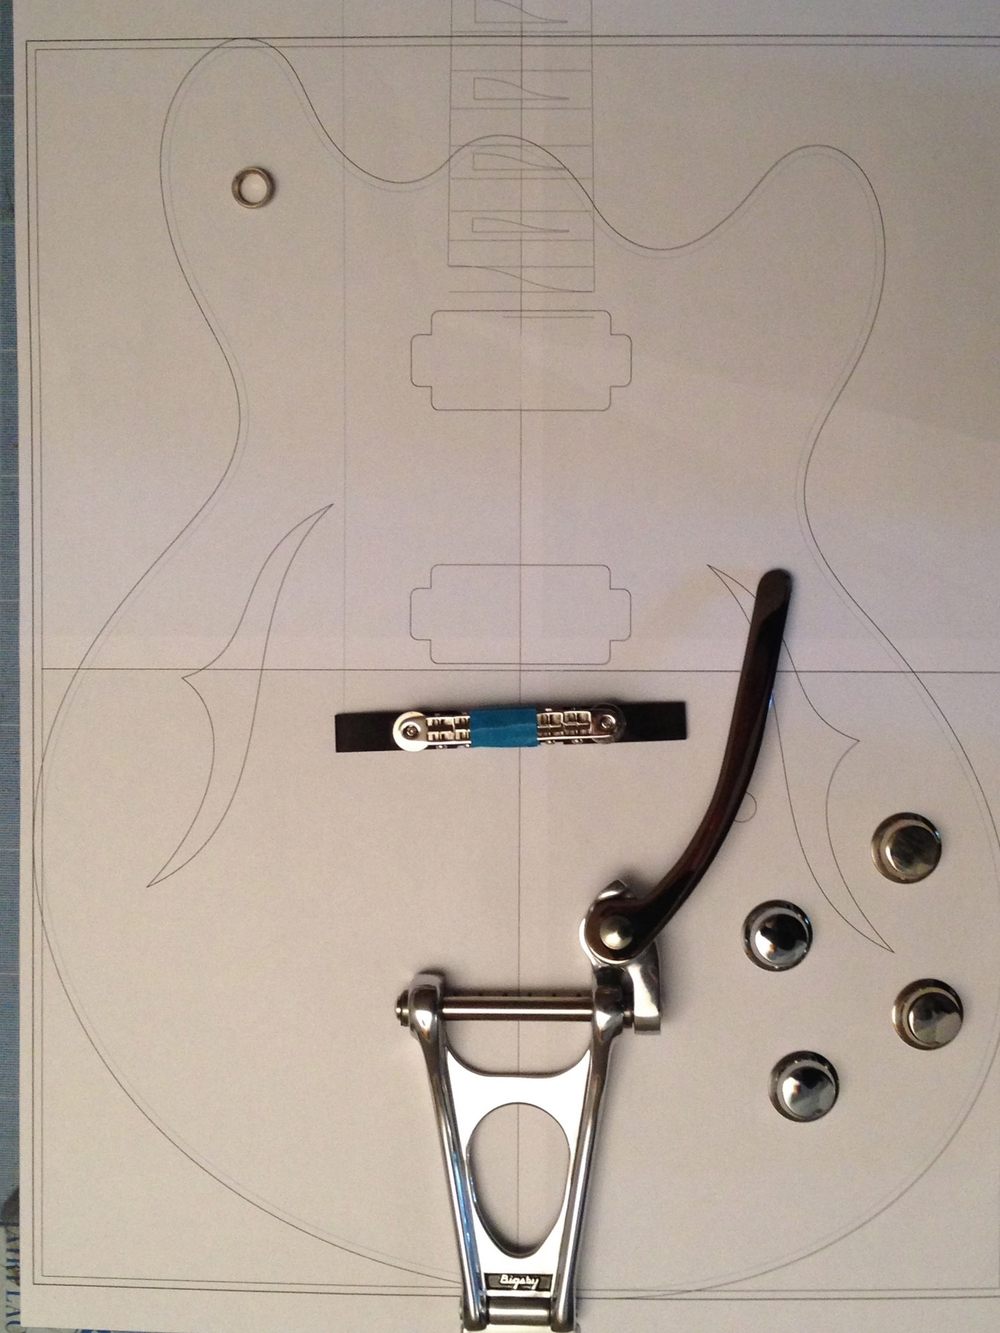 J35 - Layout of controls with Bigsby